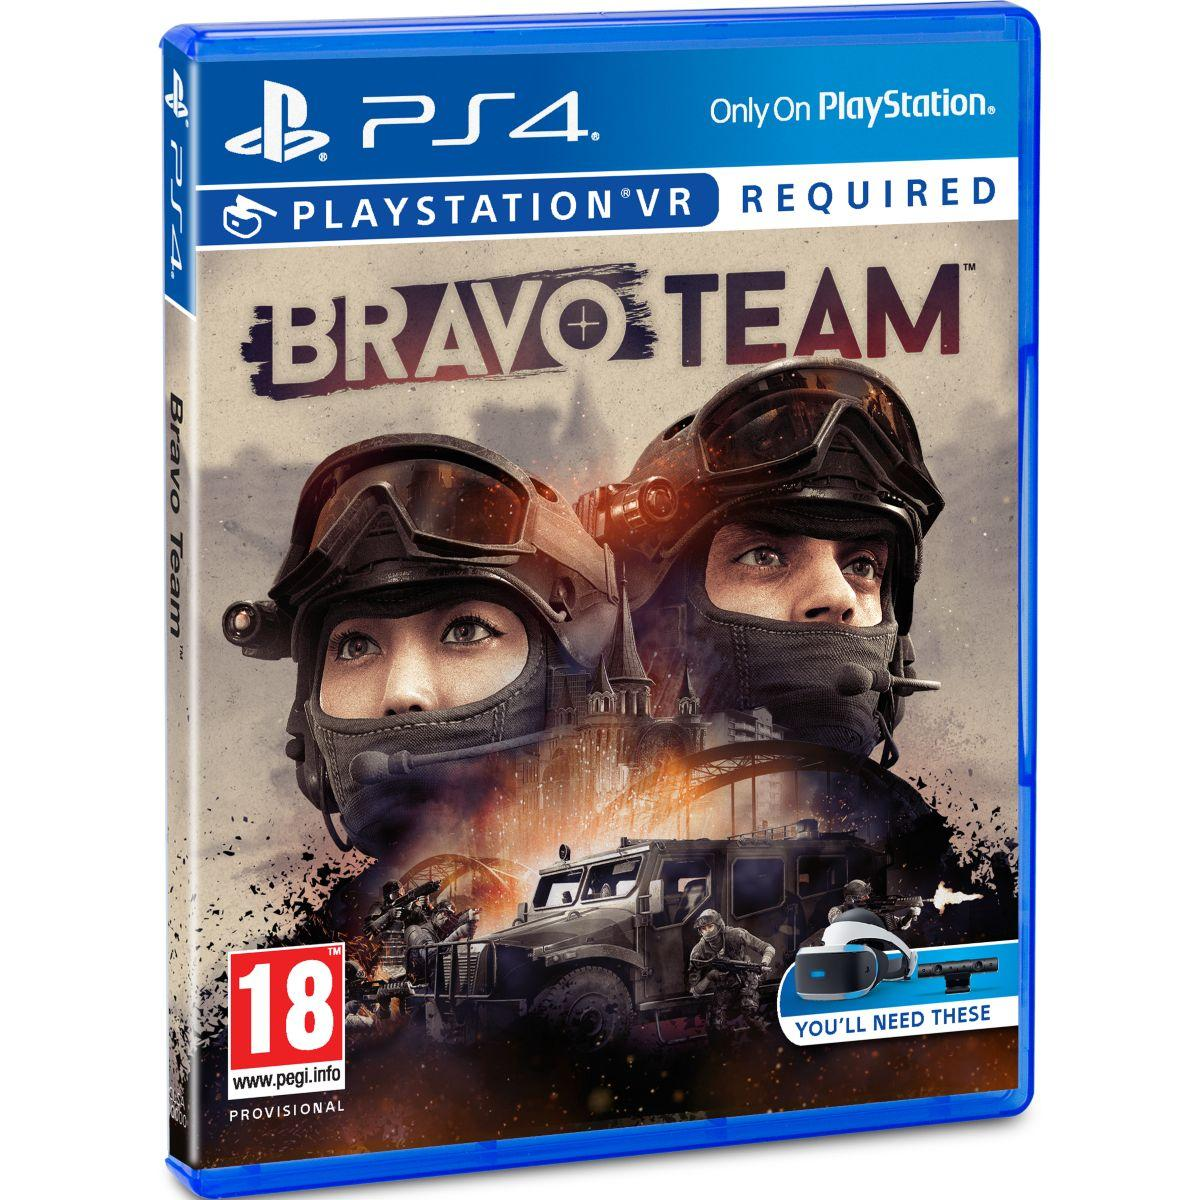 Jeu ps4 sony jeu vr bravo team + qui es-tu ? (photo)